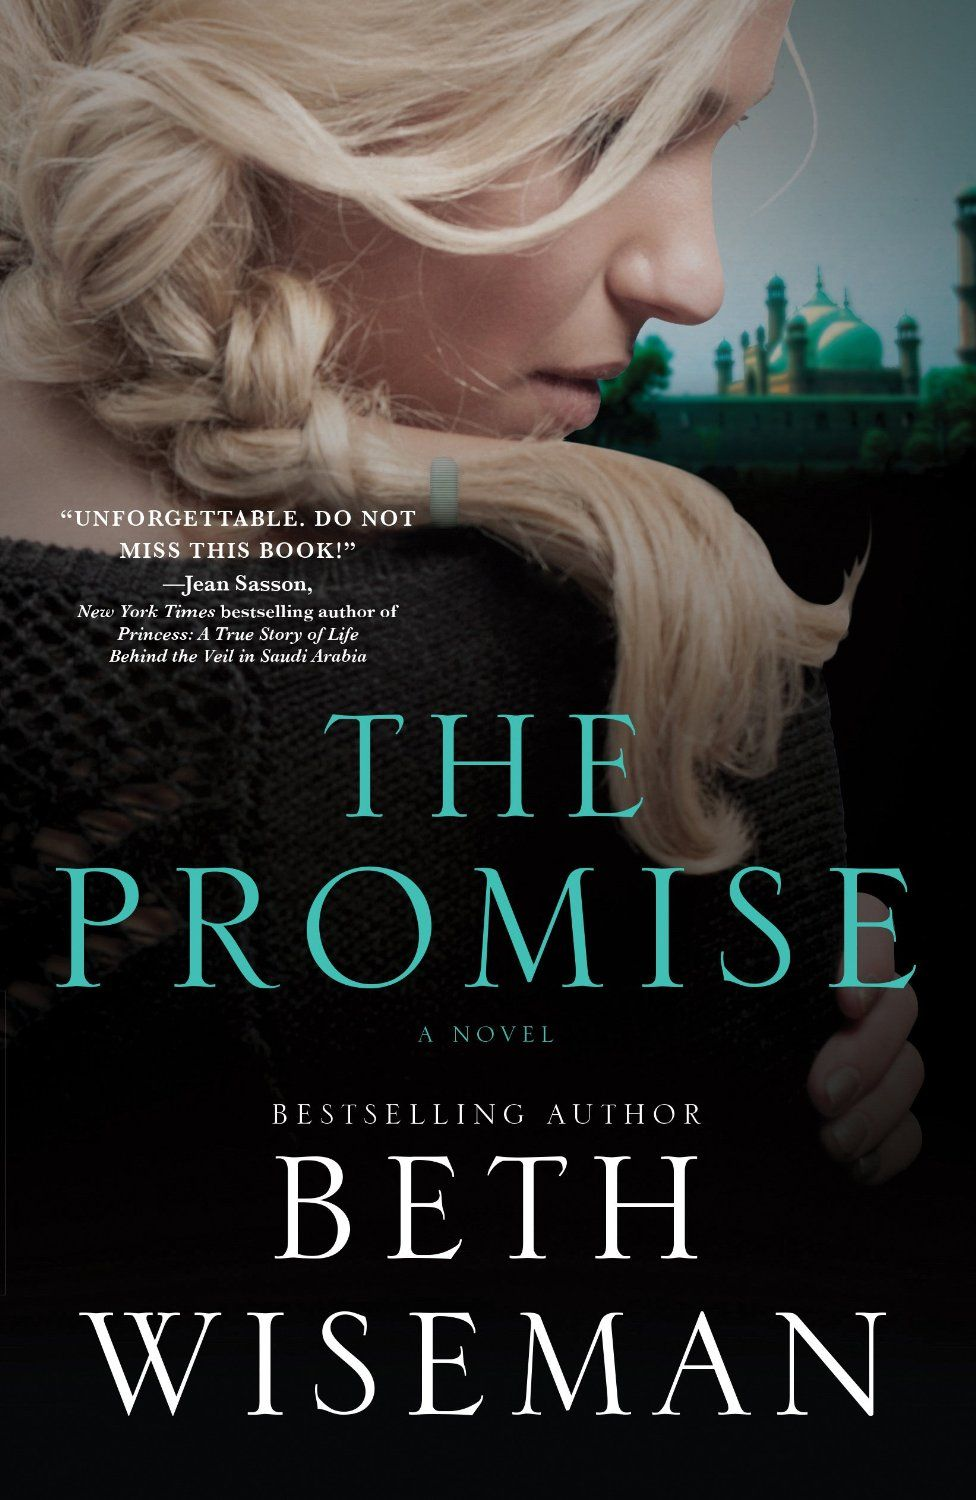 Based on a true story-disturbing but good. 2014 Release - by Beth Wiseman